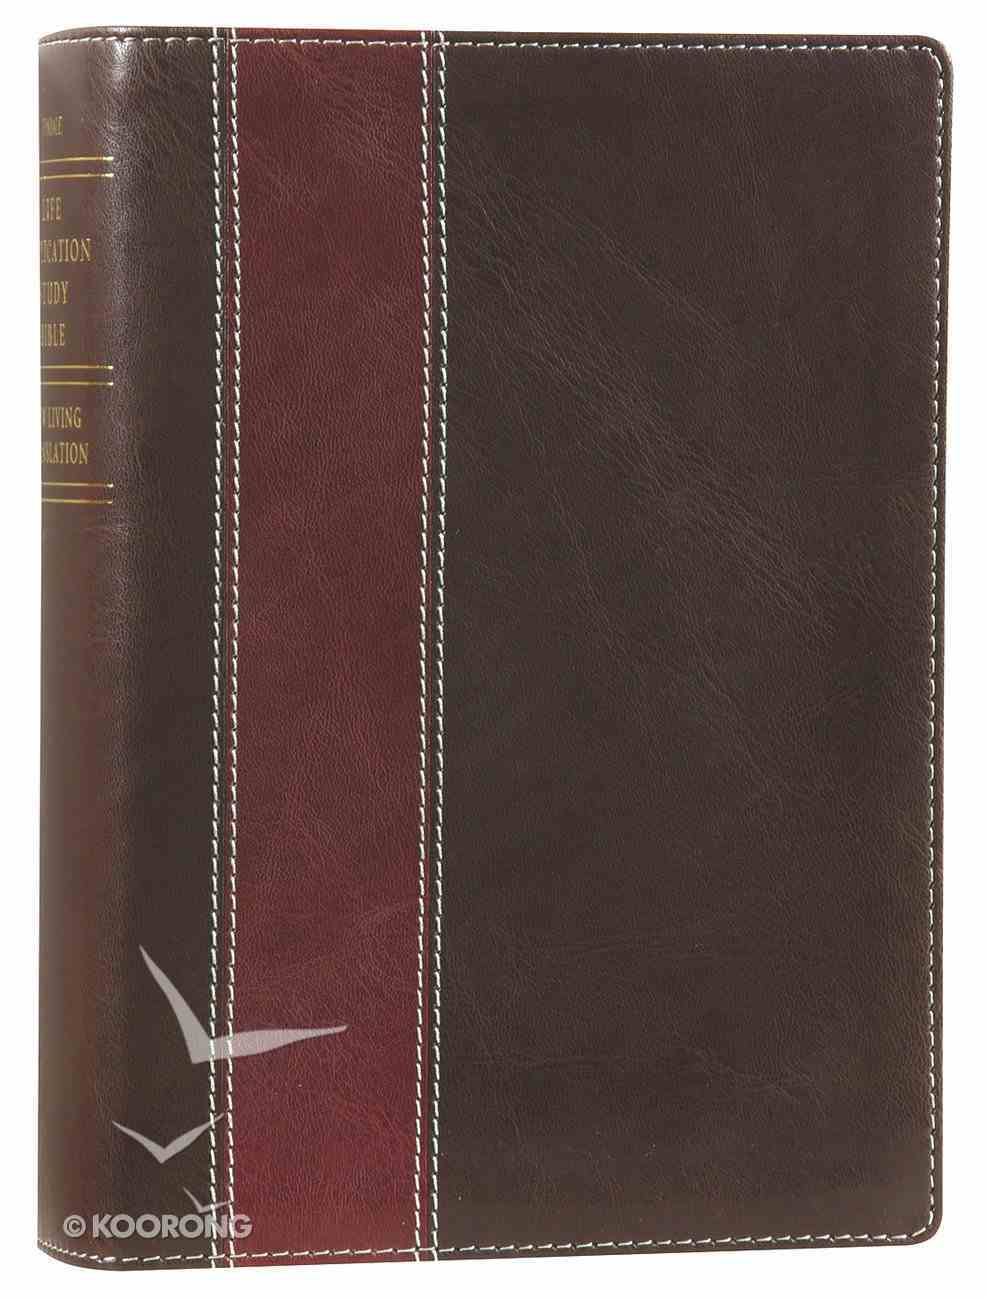 NLT Life Application Study Personal Size Bible Brown (Black Letter Edition) Imitation Leather